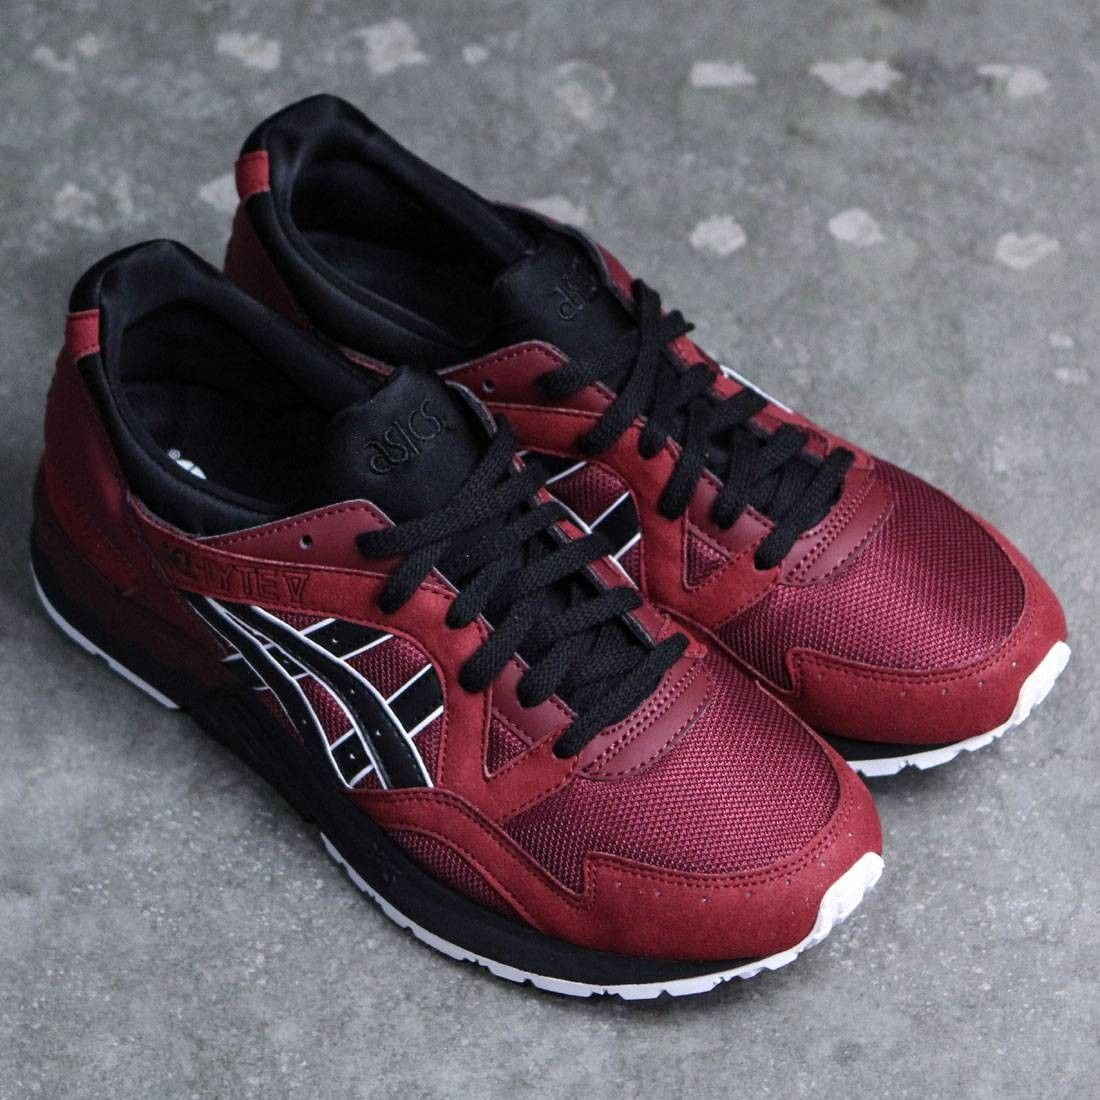 new product fe516 0c3f9 Asics Tiger Men Gel-Lyte V (red / pomegranate / black) in ...